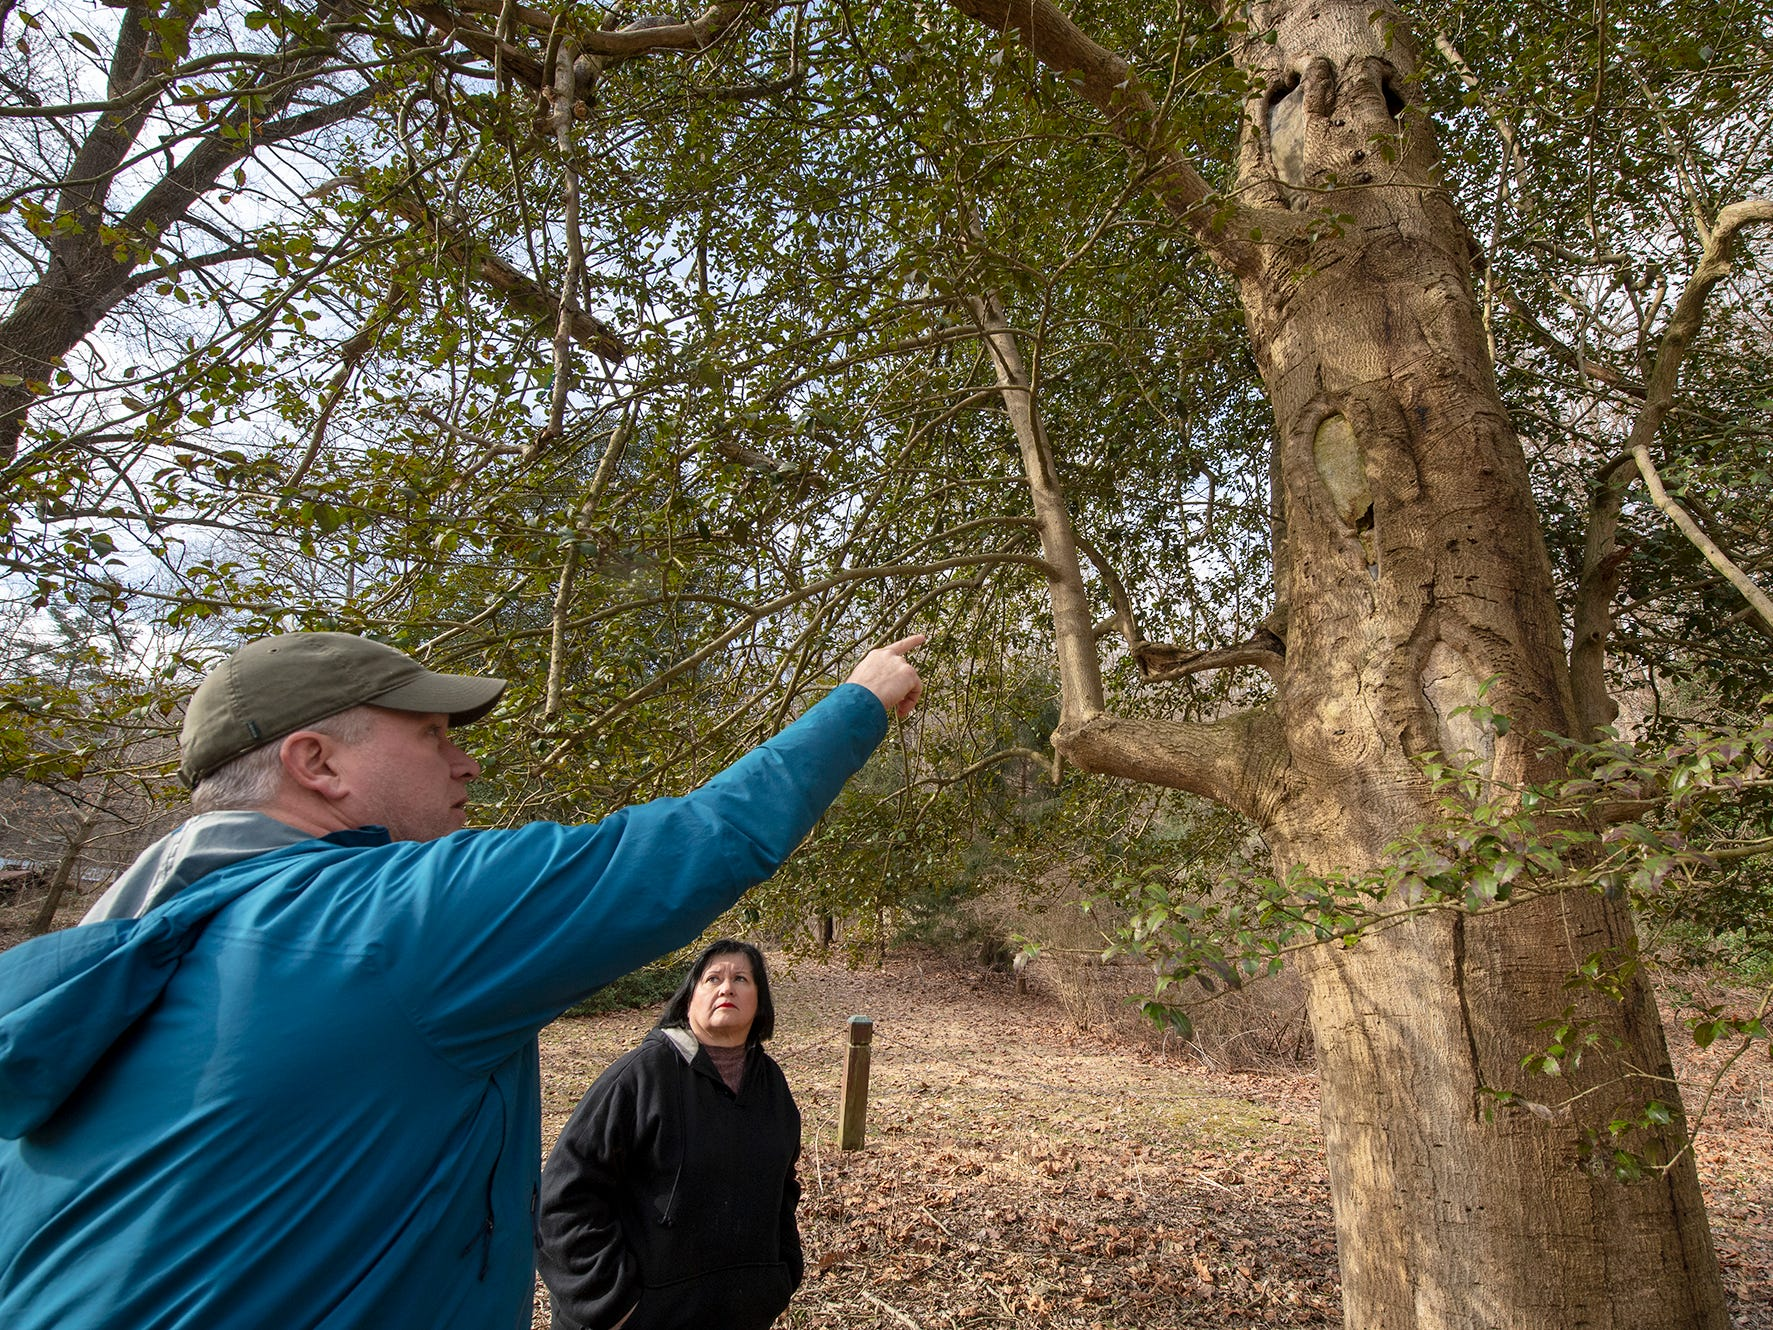 Certified arborist Scott Wade talks with Debbie Saylor, collections and research director for Indian Steps Museum about the health of the The American holly tree. The tree is believed to be 350 years old and is part of the Indian Steps Museum along the Susquehanna River in Lower Chanceford Township.